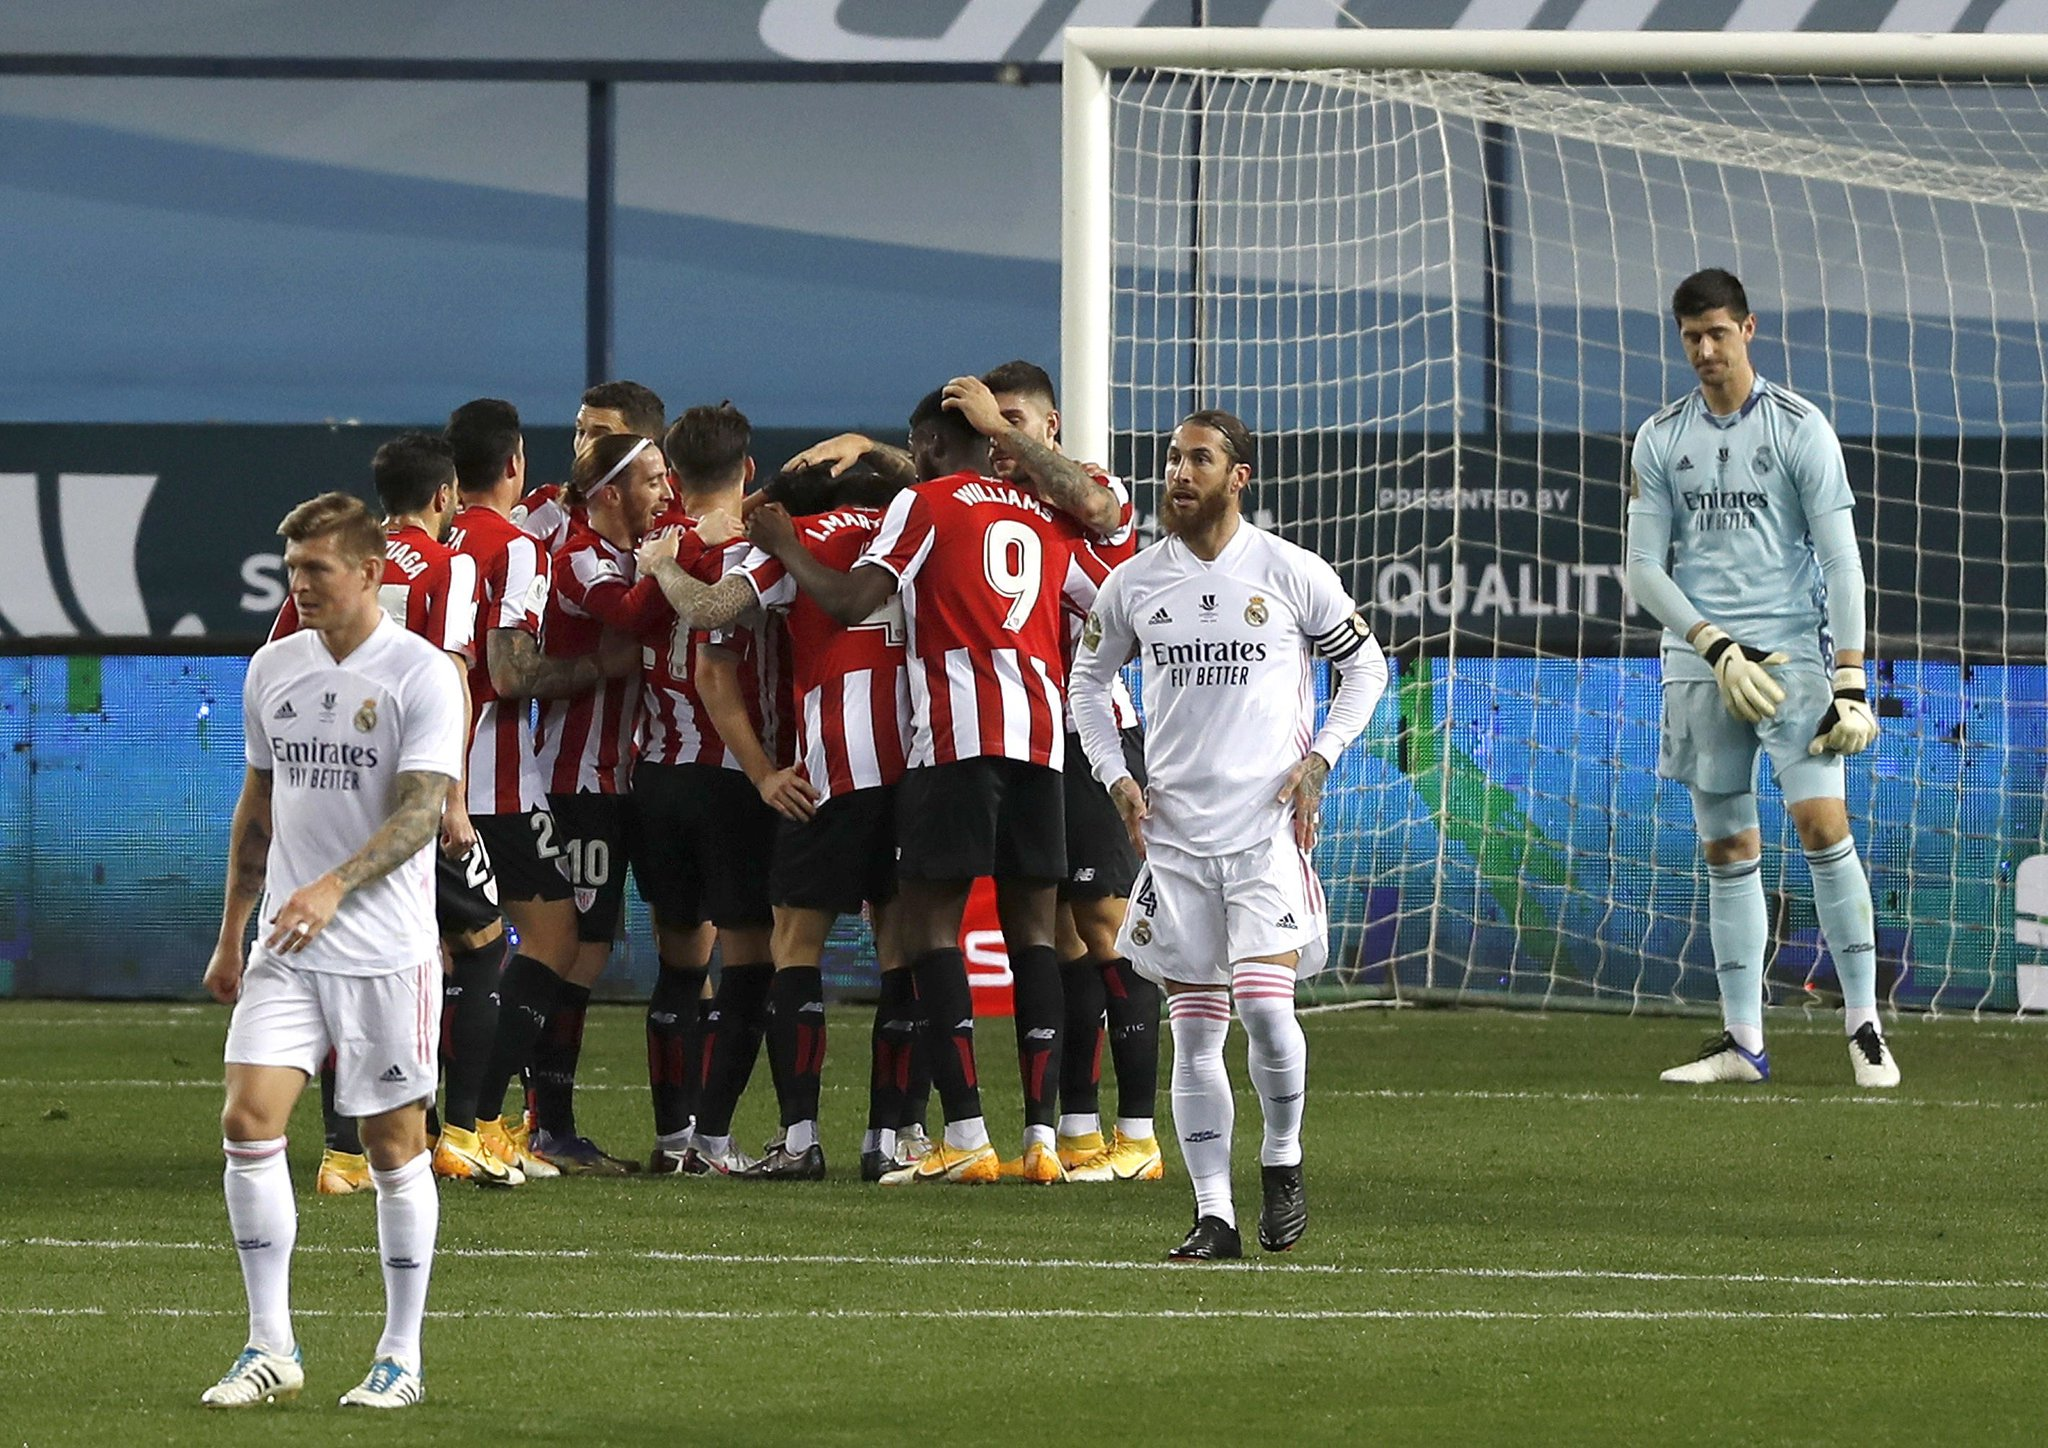 Athletic Bilbao Shock Real Madrid In Spanish Super Cup, To Face Barca In Final